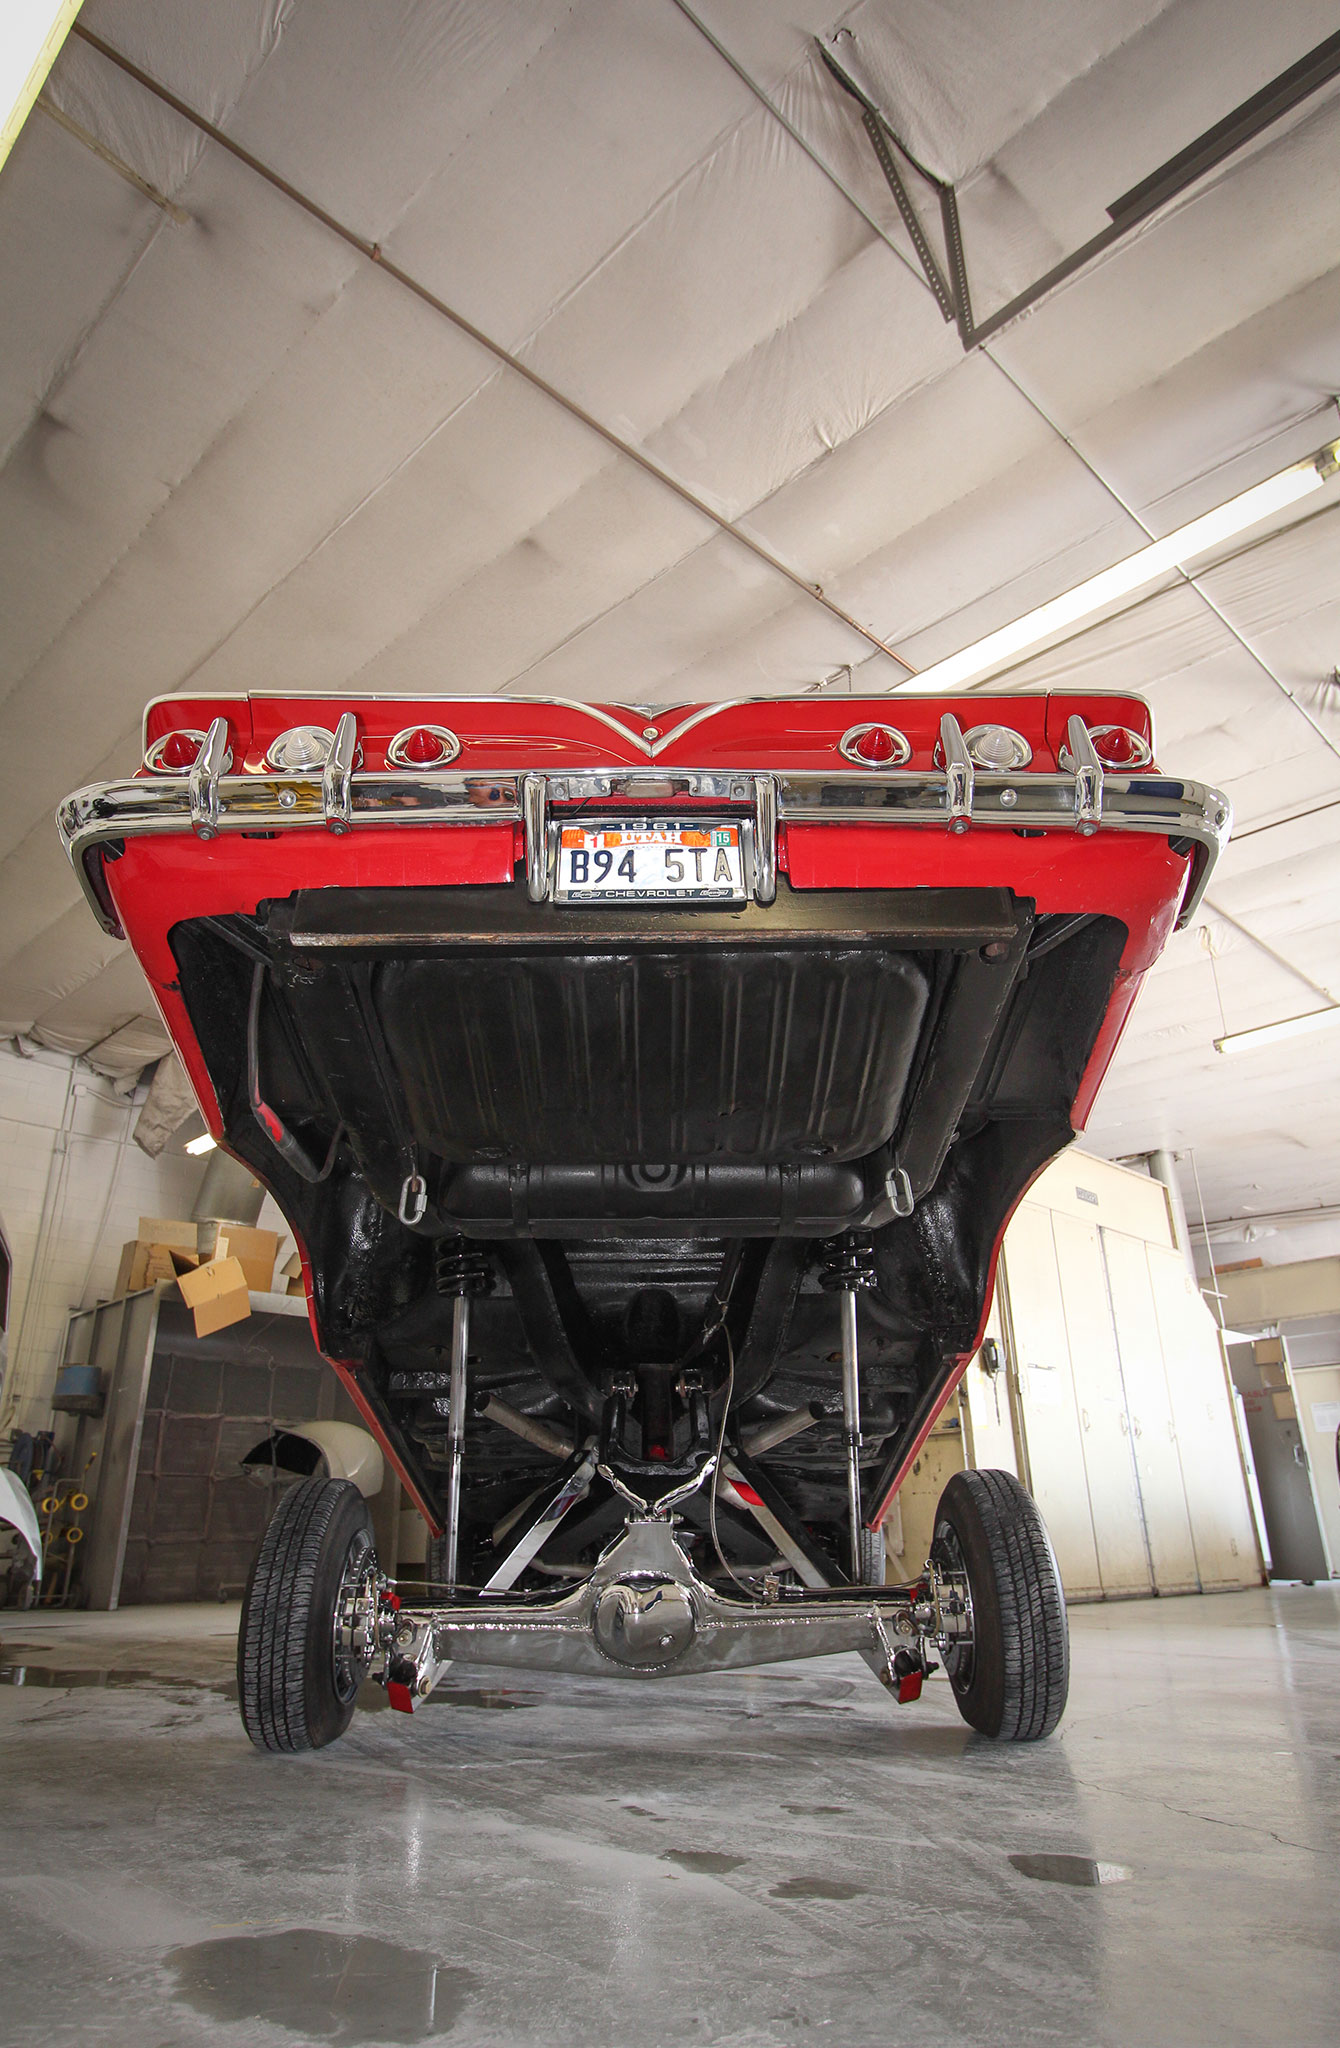 X together with Frame furthermore Chevrolet Suburban Sound System furthermore  further D B. on 1961 chevy impala chevrolet